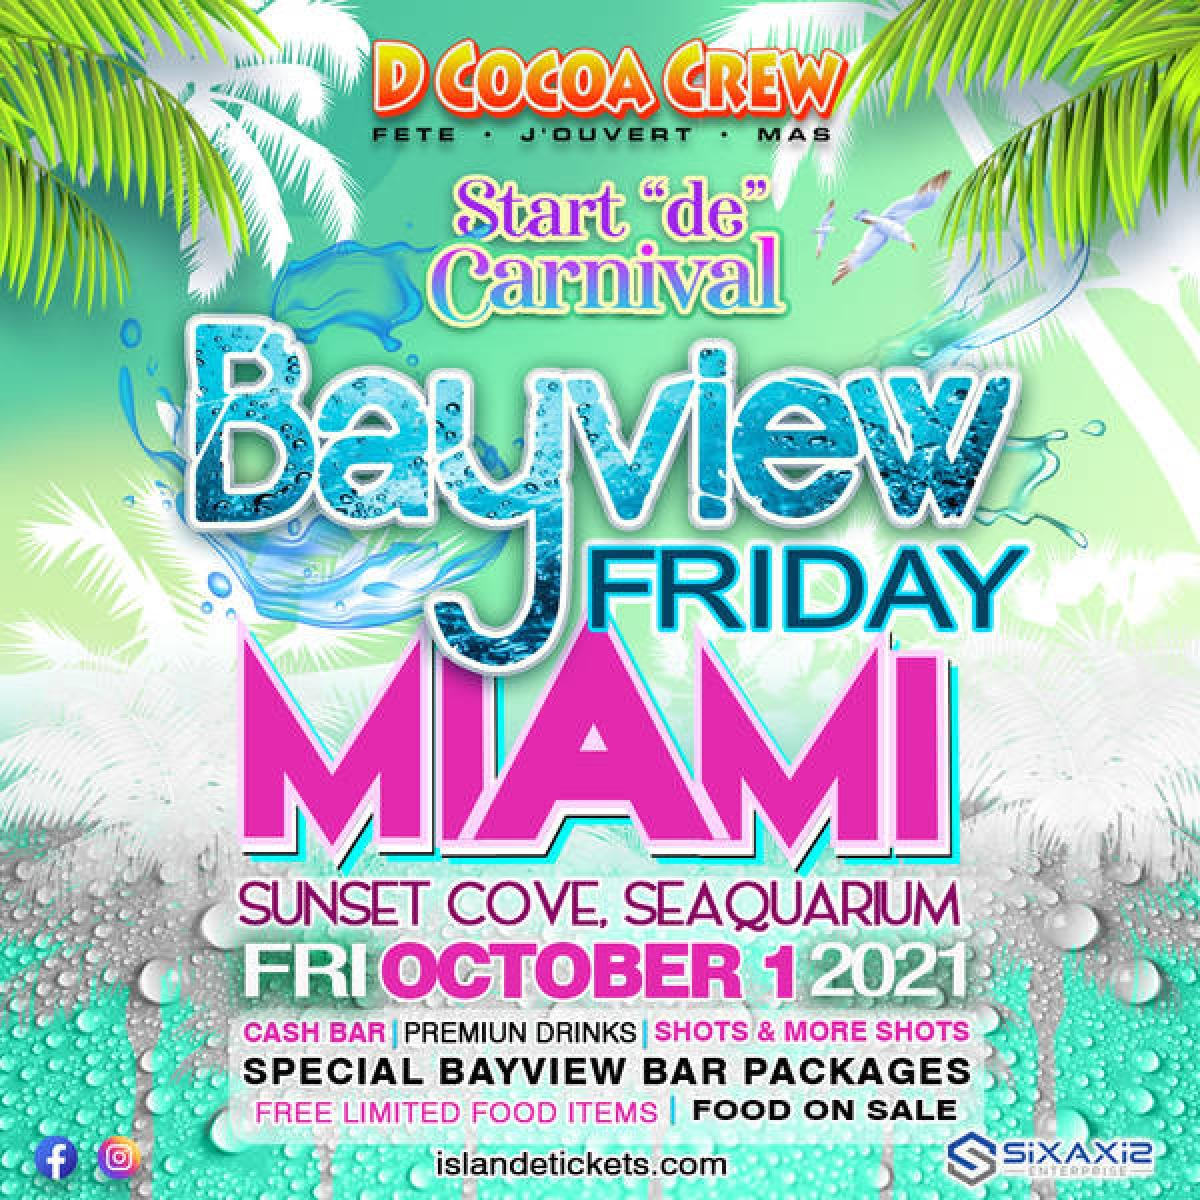 Bayview Friday Miami flyer or graphic.